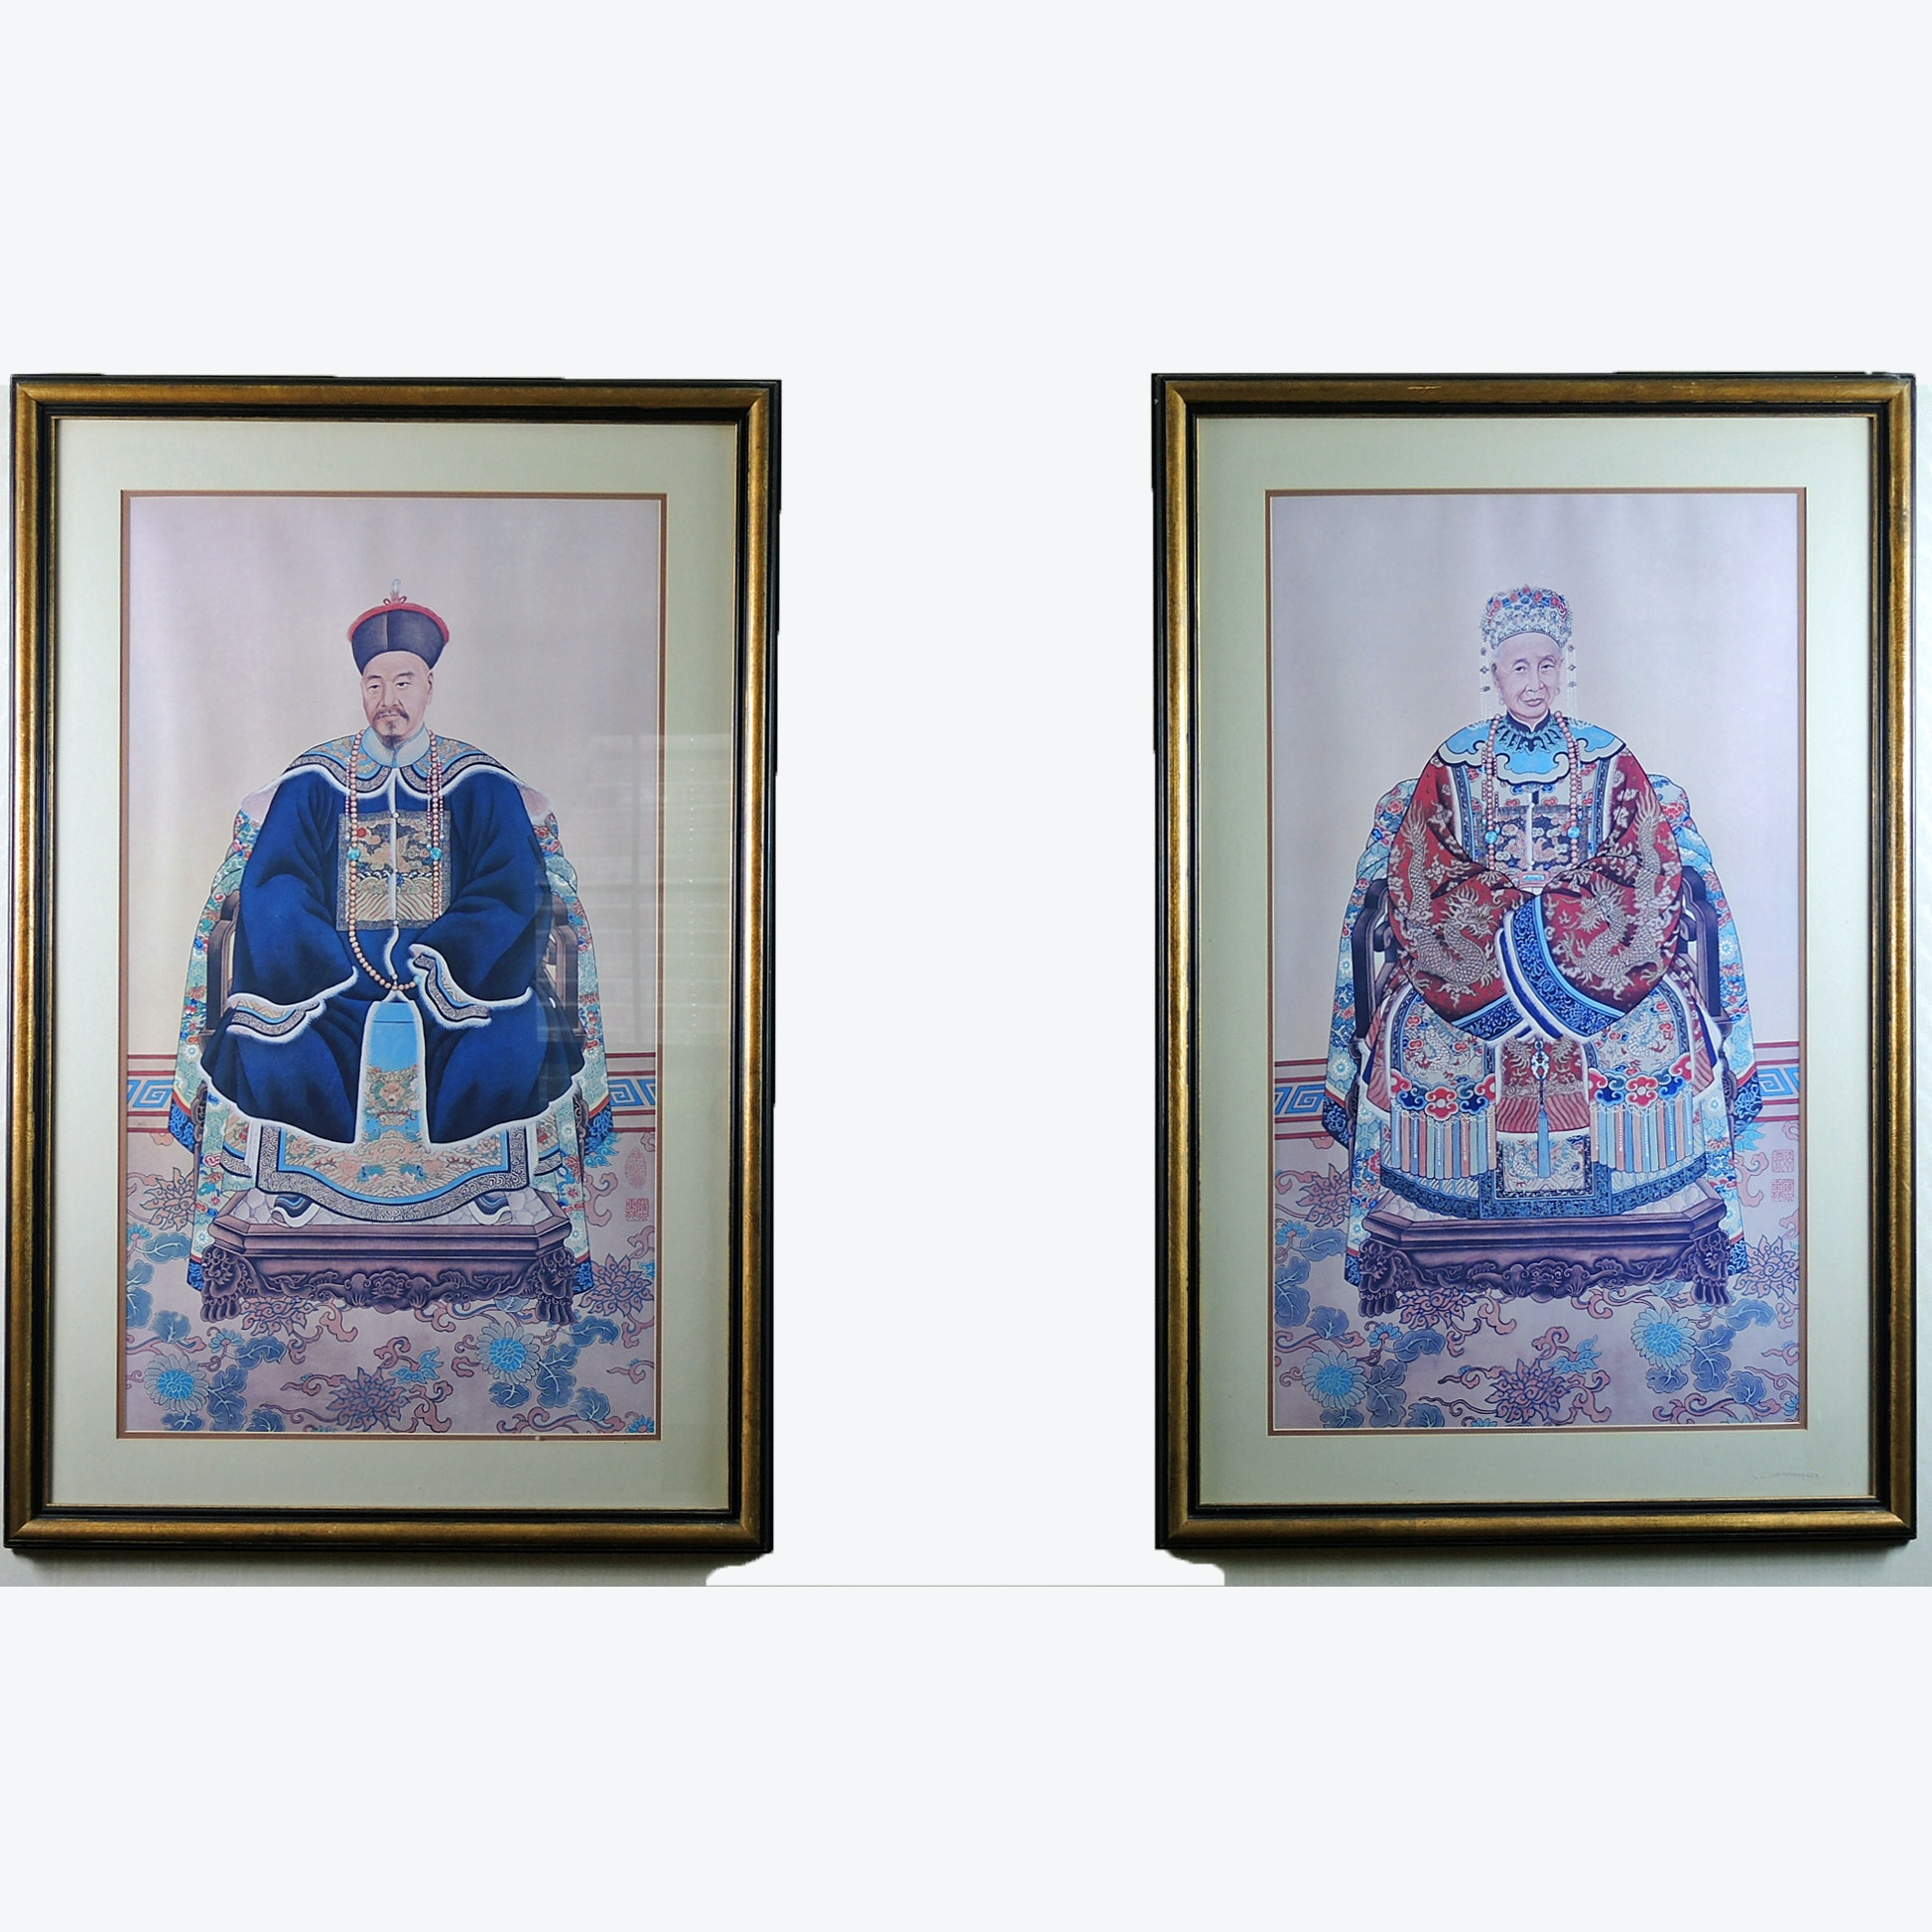 Pair of Chinese Ancestor Portrait Offset Lithographs